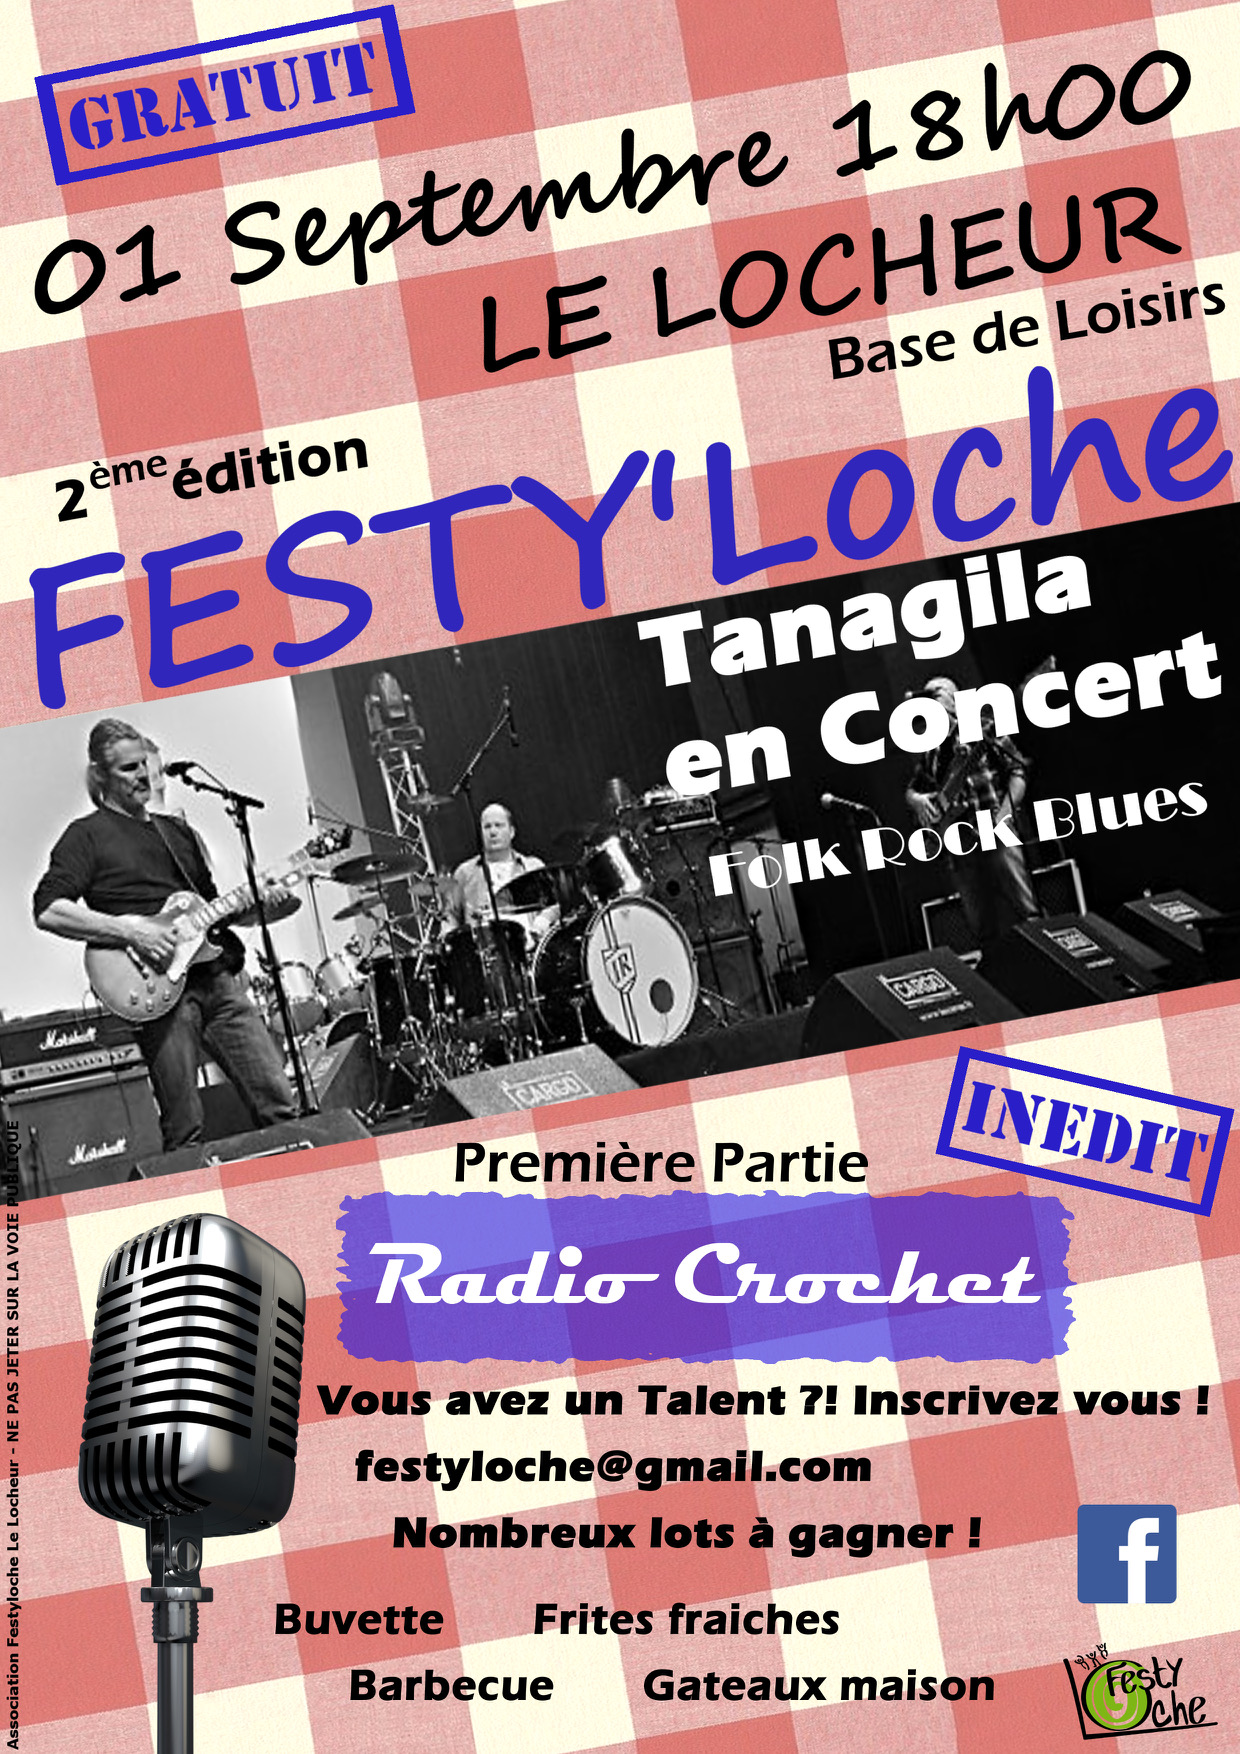 Concert festyloche1 09 2018